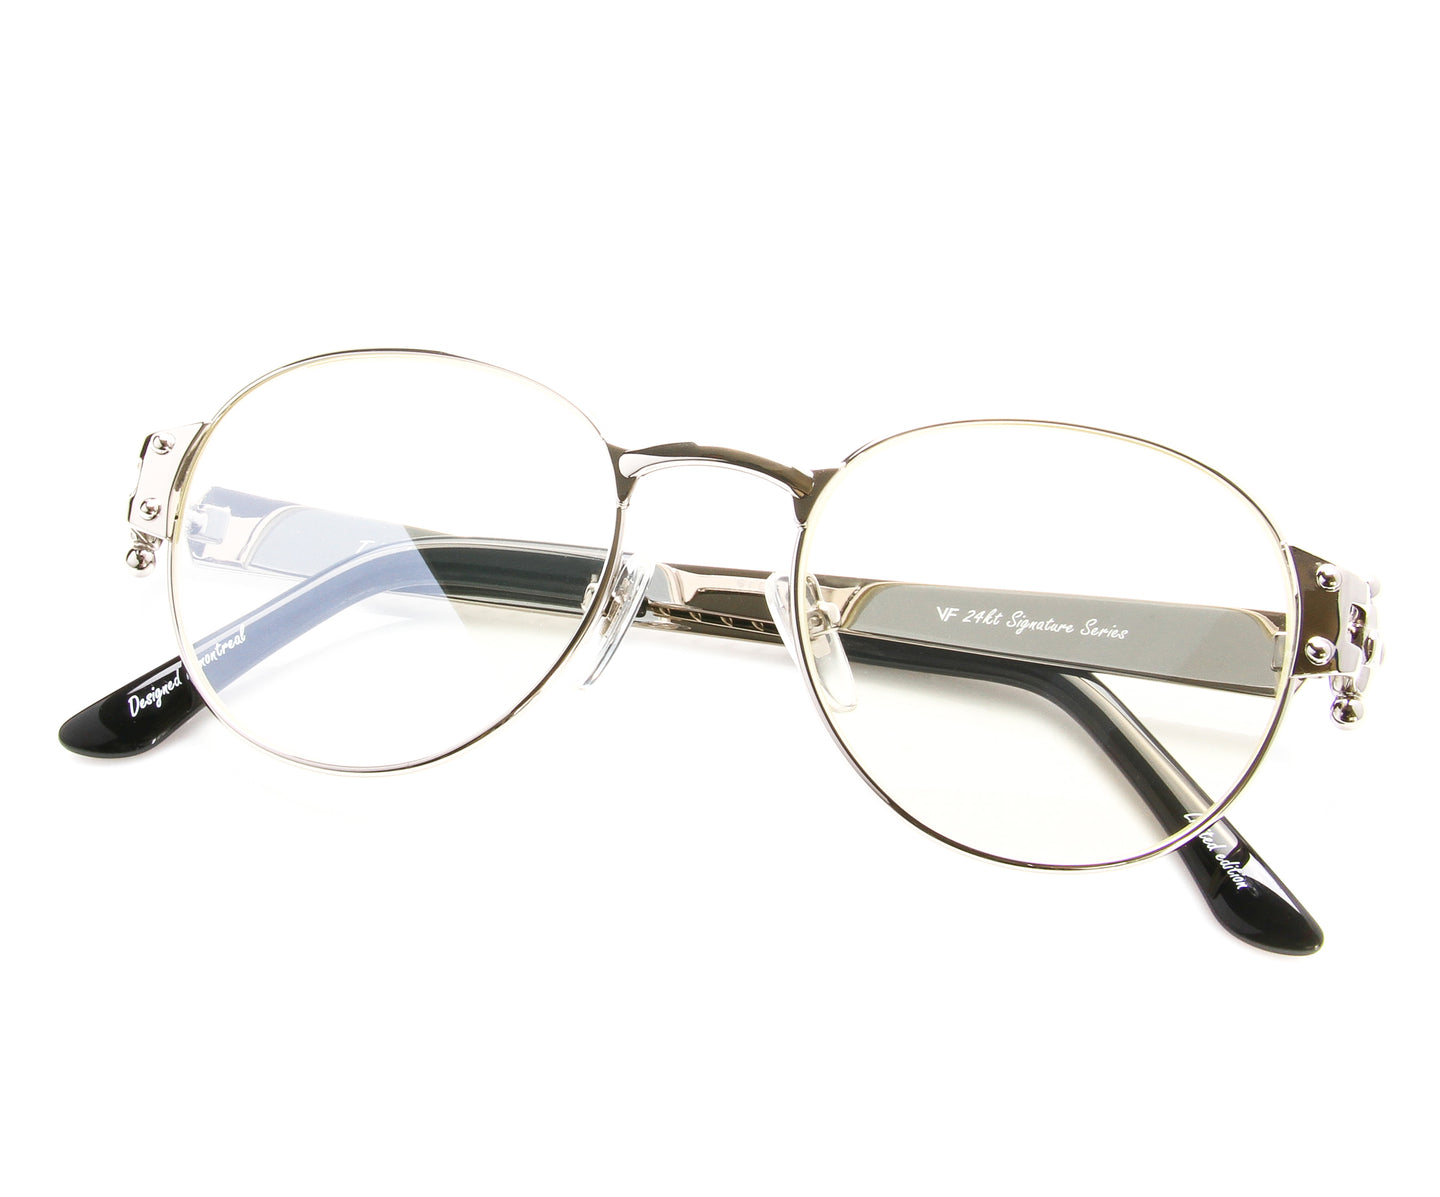 VF 1998 24KT White Gold Masterpiece (Flash Silver), VF Masterpiece , glasses frames, eyeglasses online, eyeglass frames, mens glasses, womens glasses, buy glasses online, designer eyeglasses, vintage sunglasses, retro sunglasses, vintage glasses, sunglass, eyeglass, glasses, lens, vintage frames company, vf